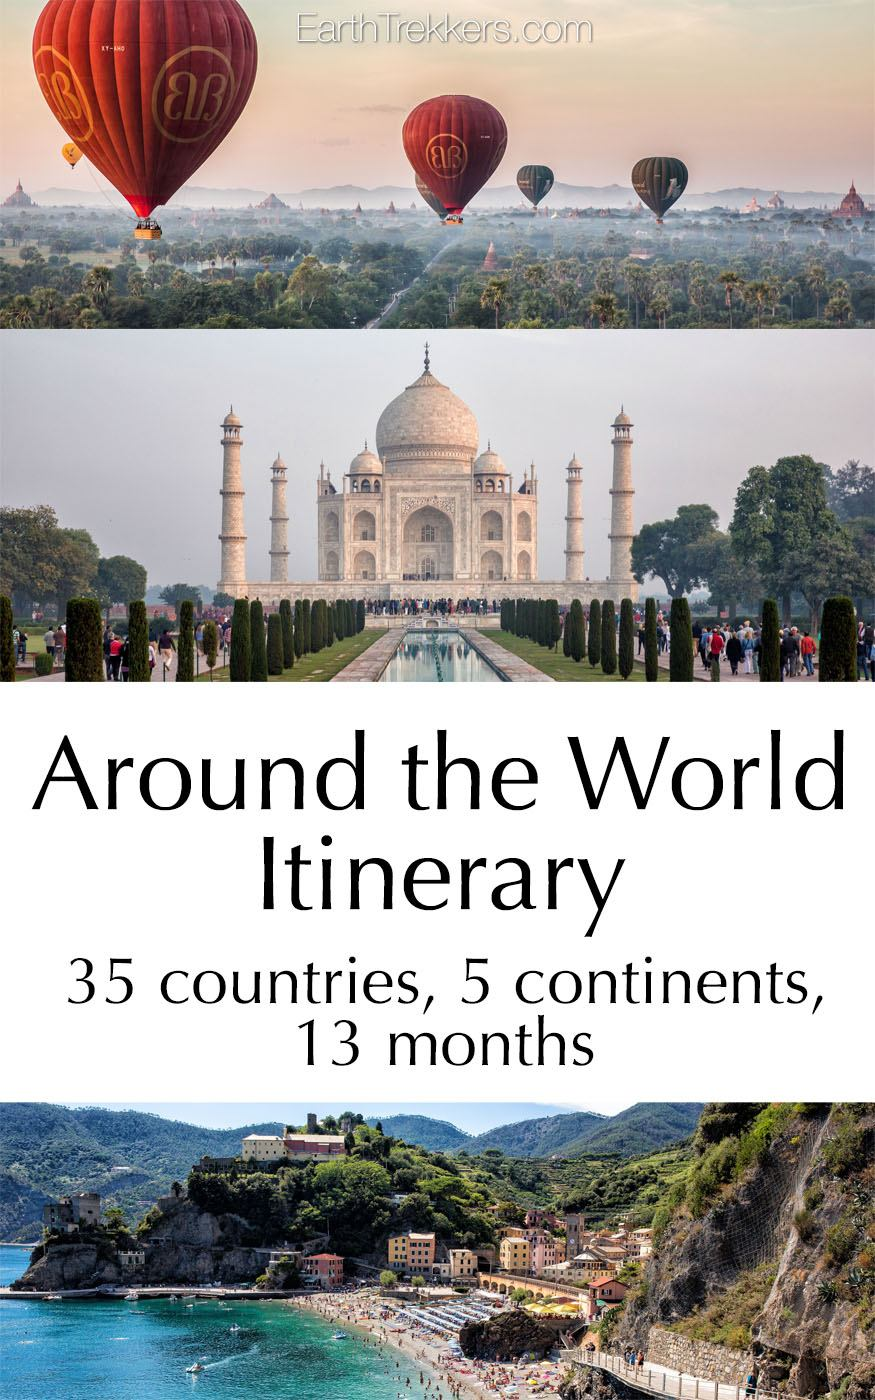 Our around the world itinerary earth trekkers for All inclusive around the world trip